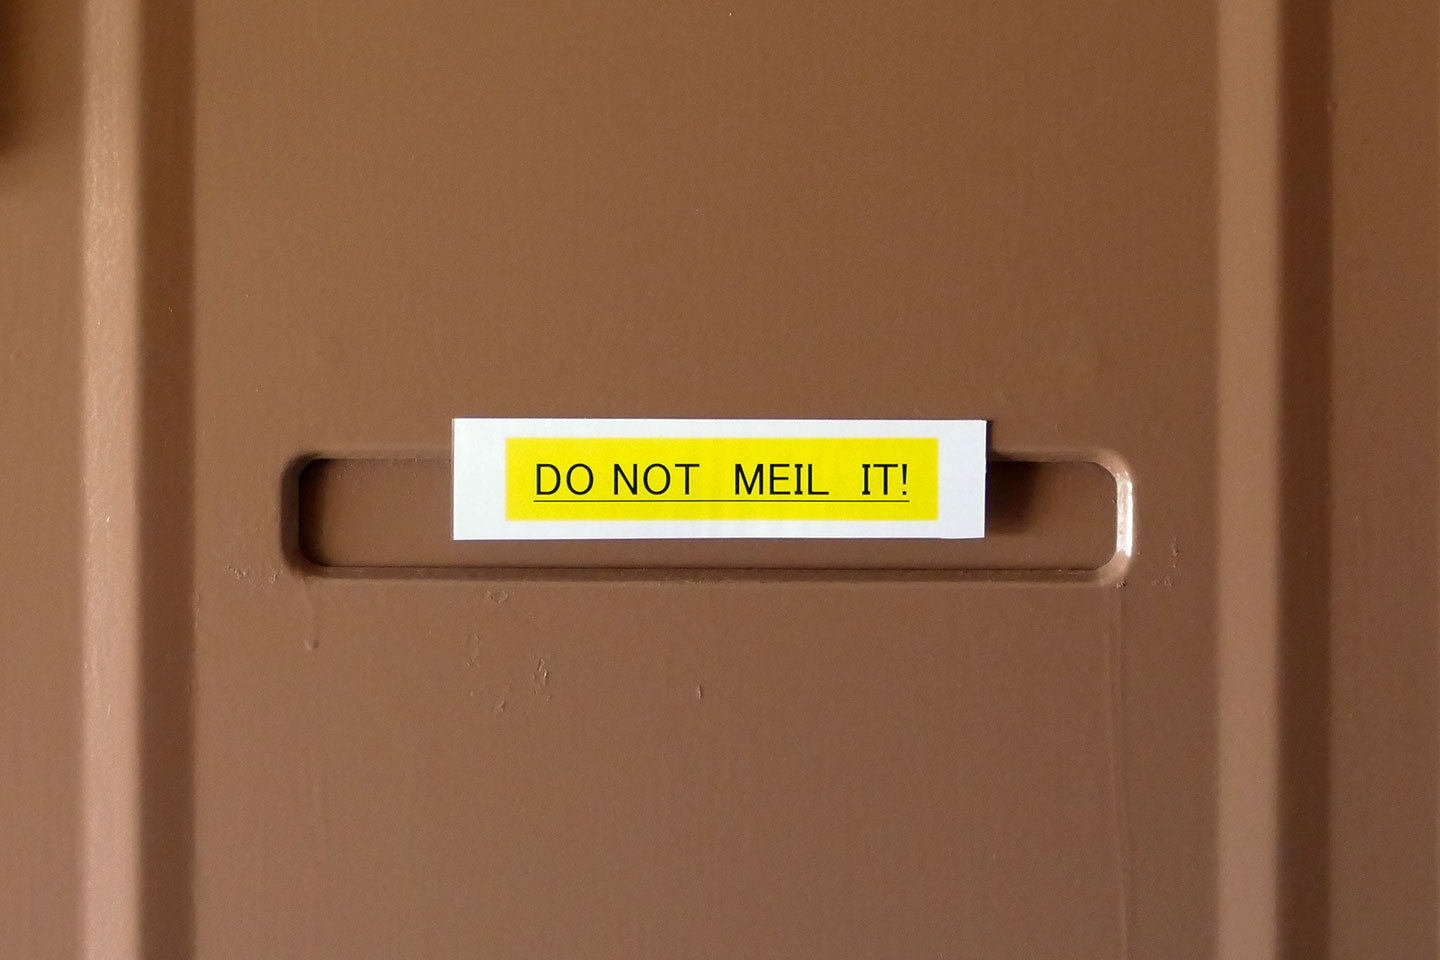 DO NOT MEIL IT!